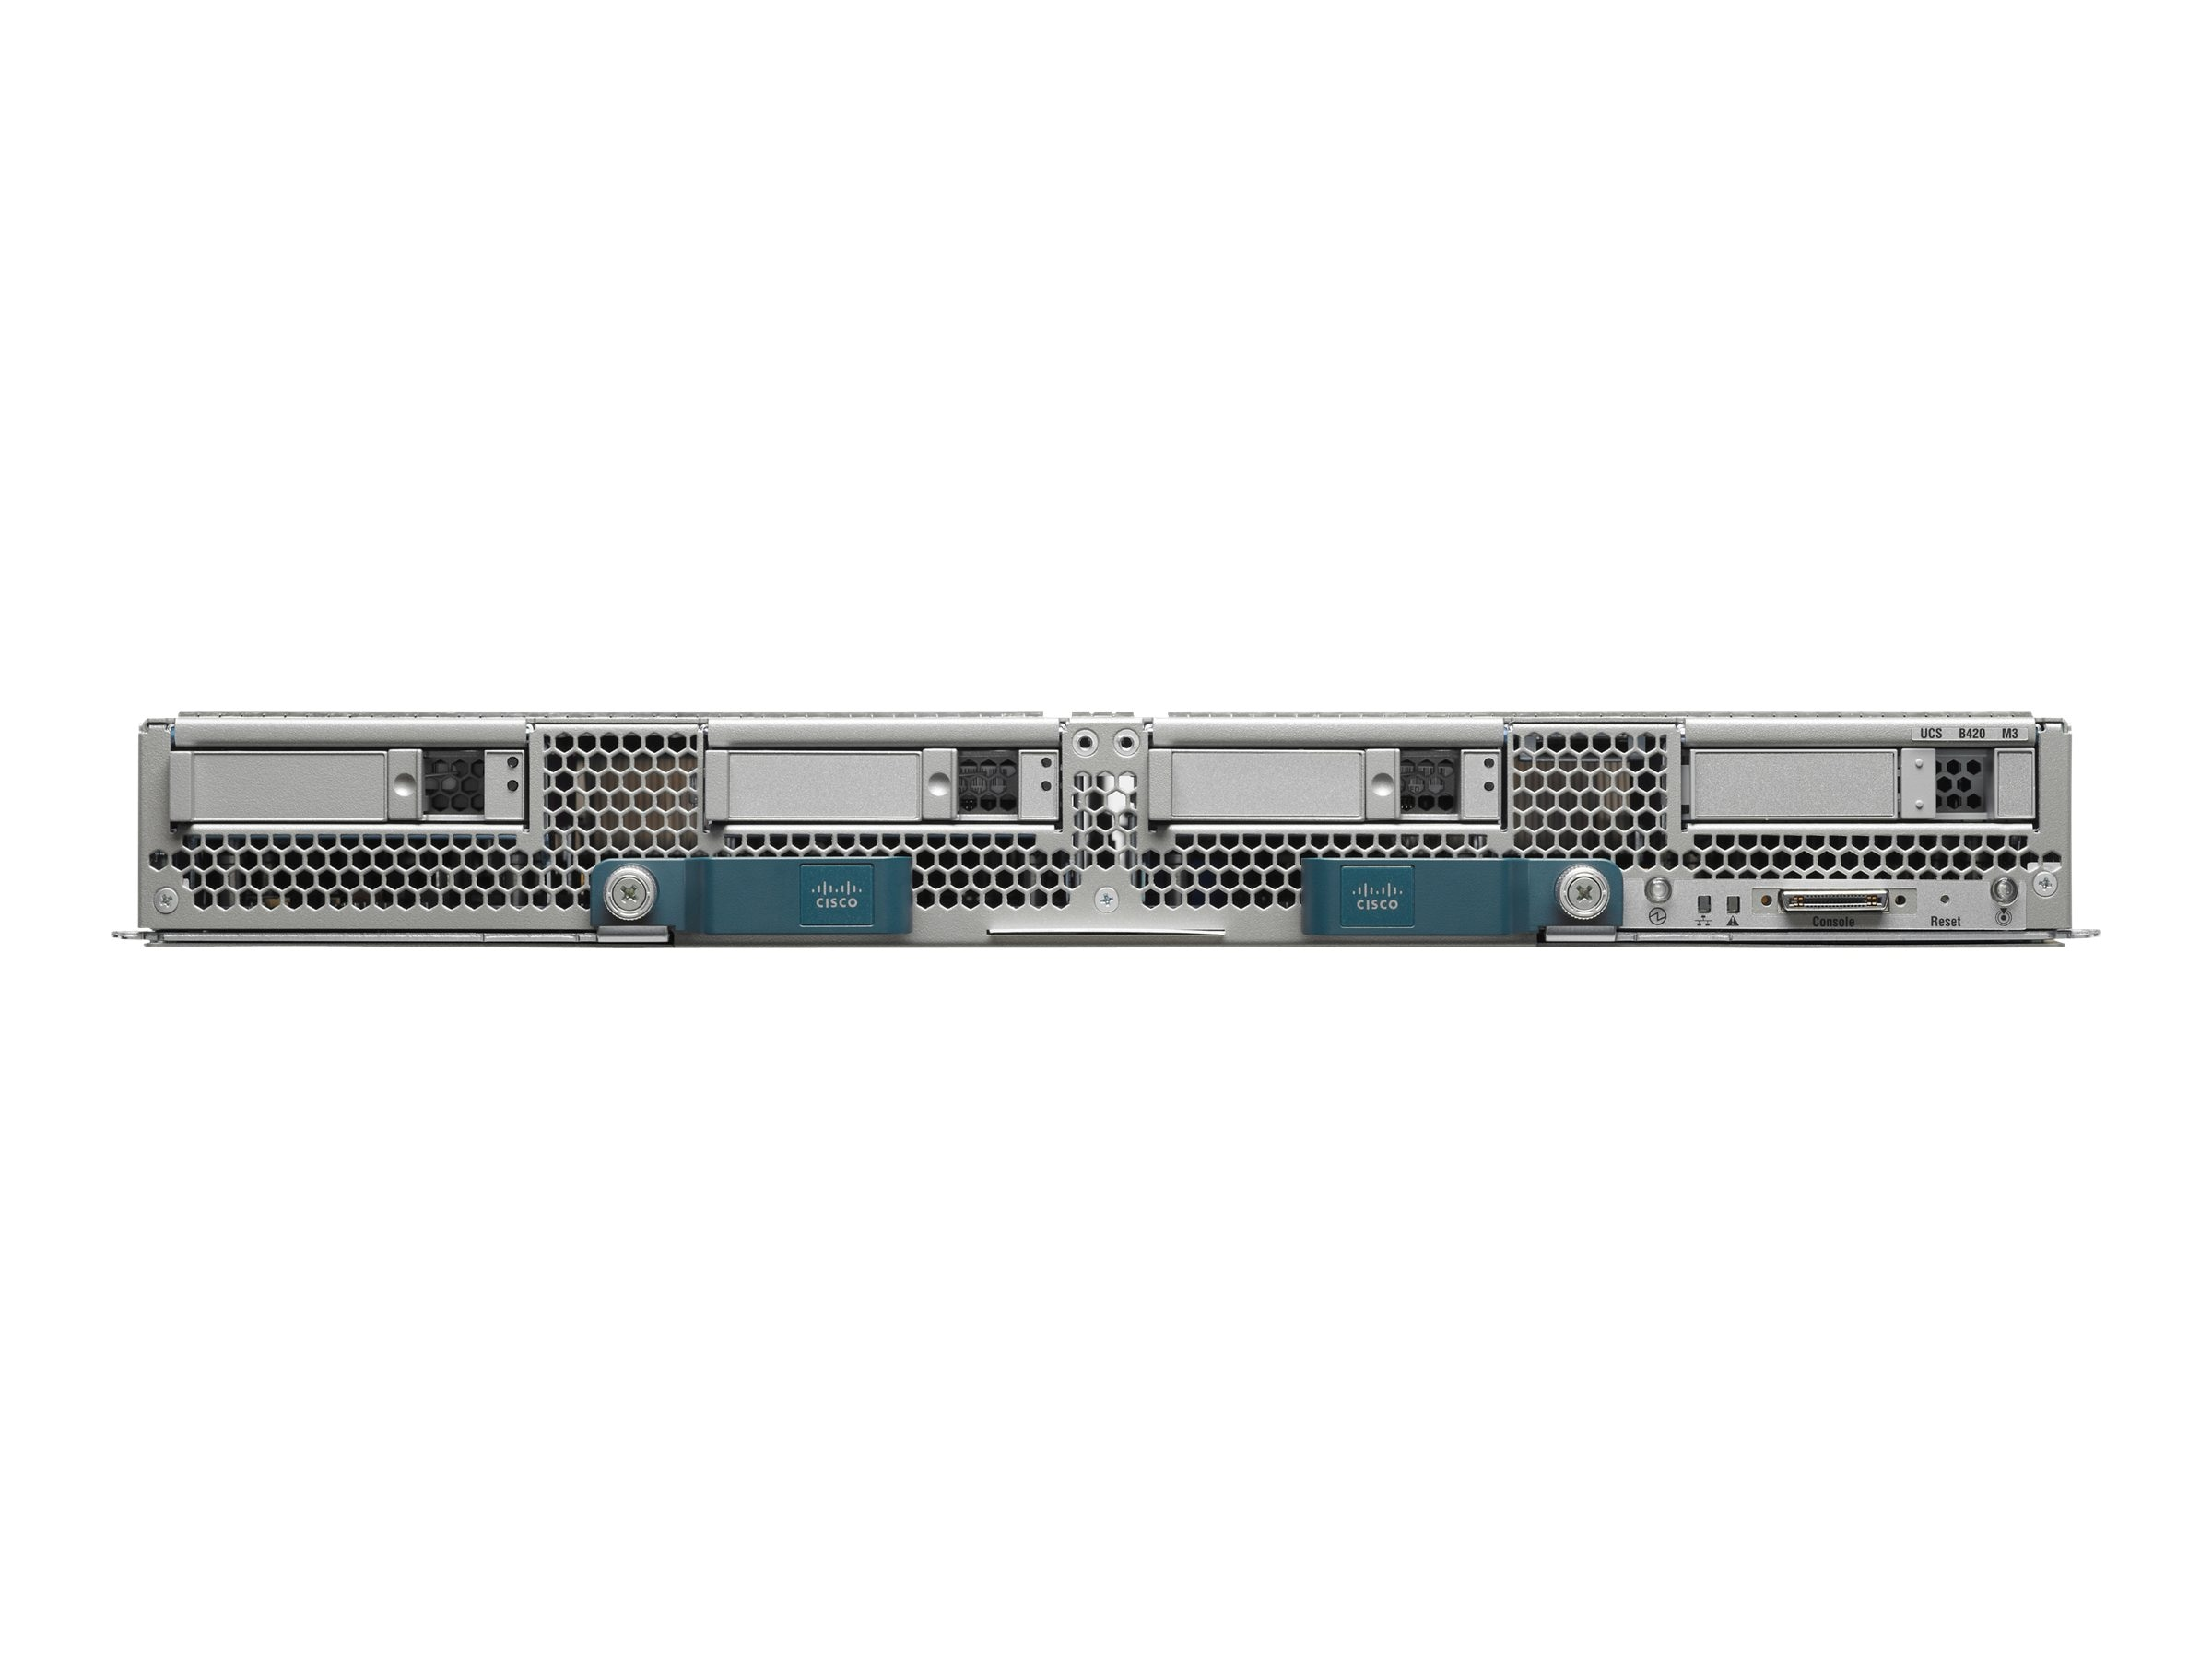 Cisco UCSB-B420-M3-D Image 1